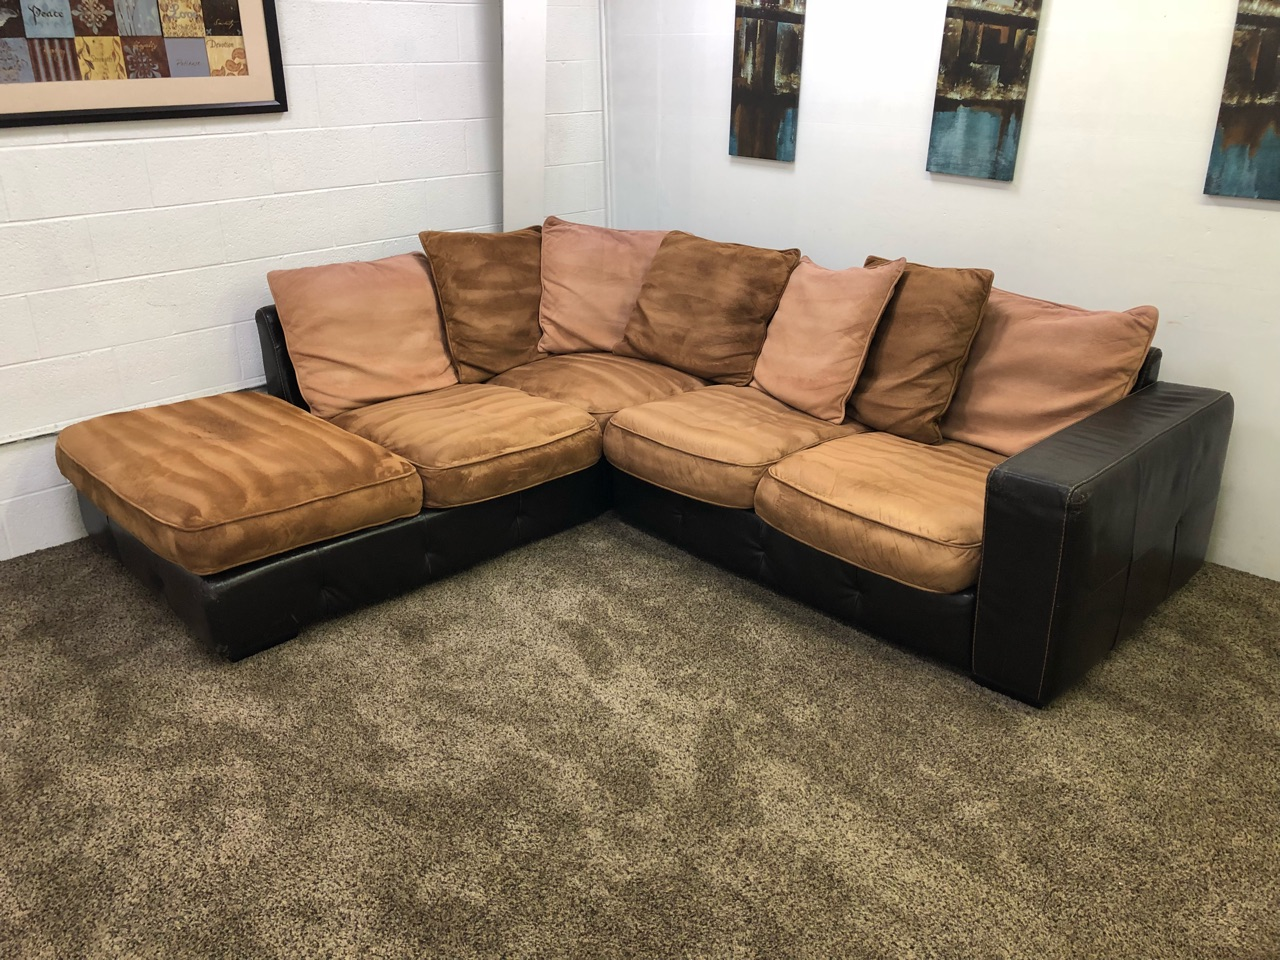 Awe Inspiring Reserved 1036 2 Piece Sand Brown Microfiber Pu Leather Sectional Set With Chaise Lounge And Multicolored Pillows Evergreenethics Interior Chair Design Evergreenethicsorg